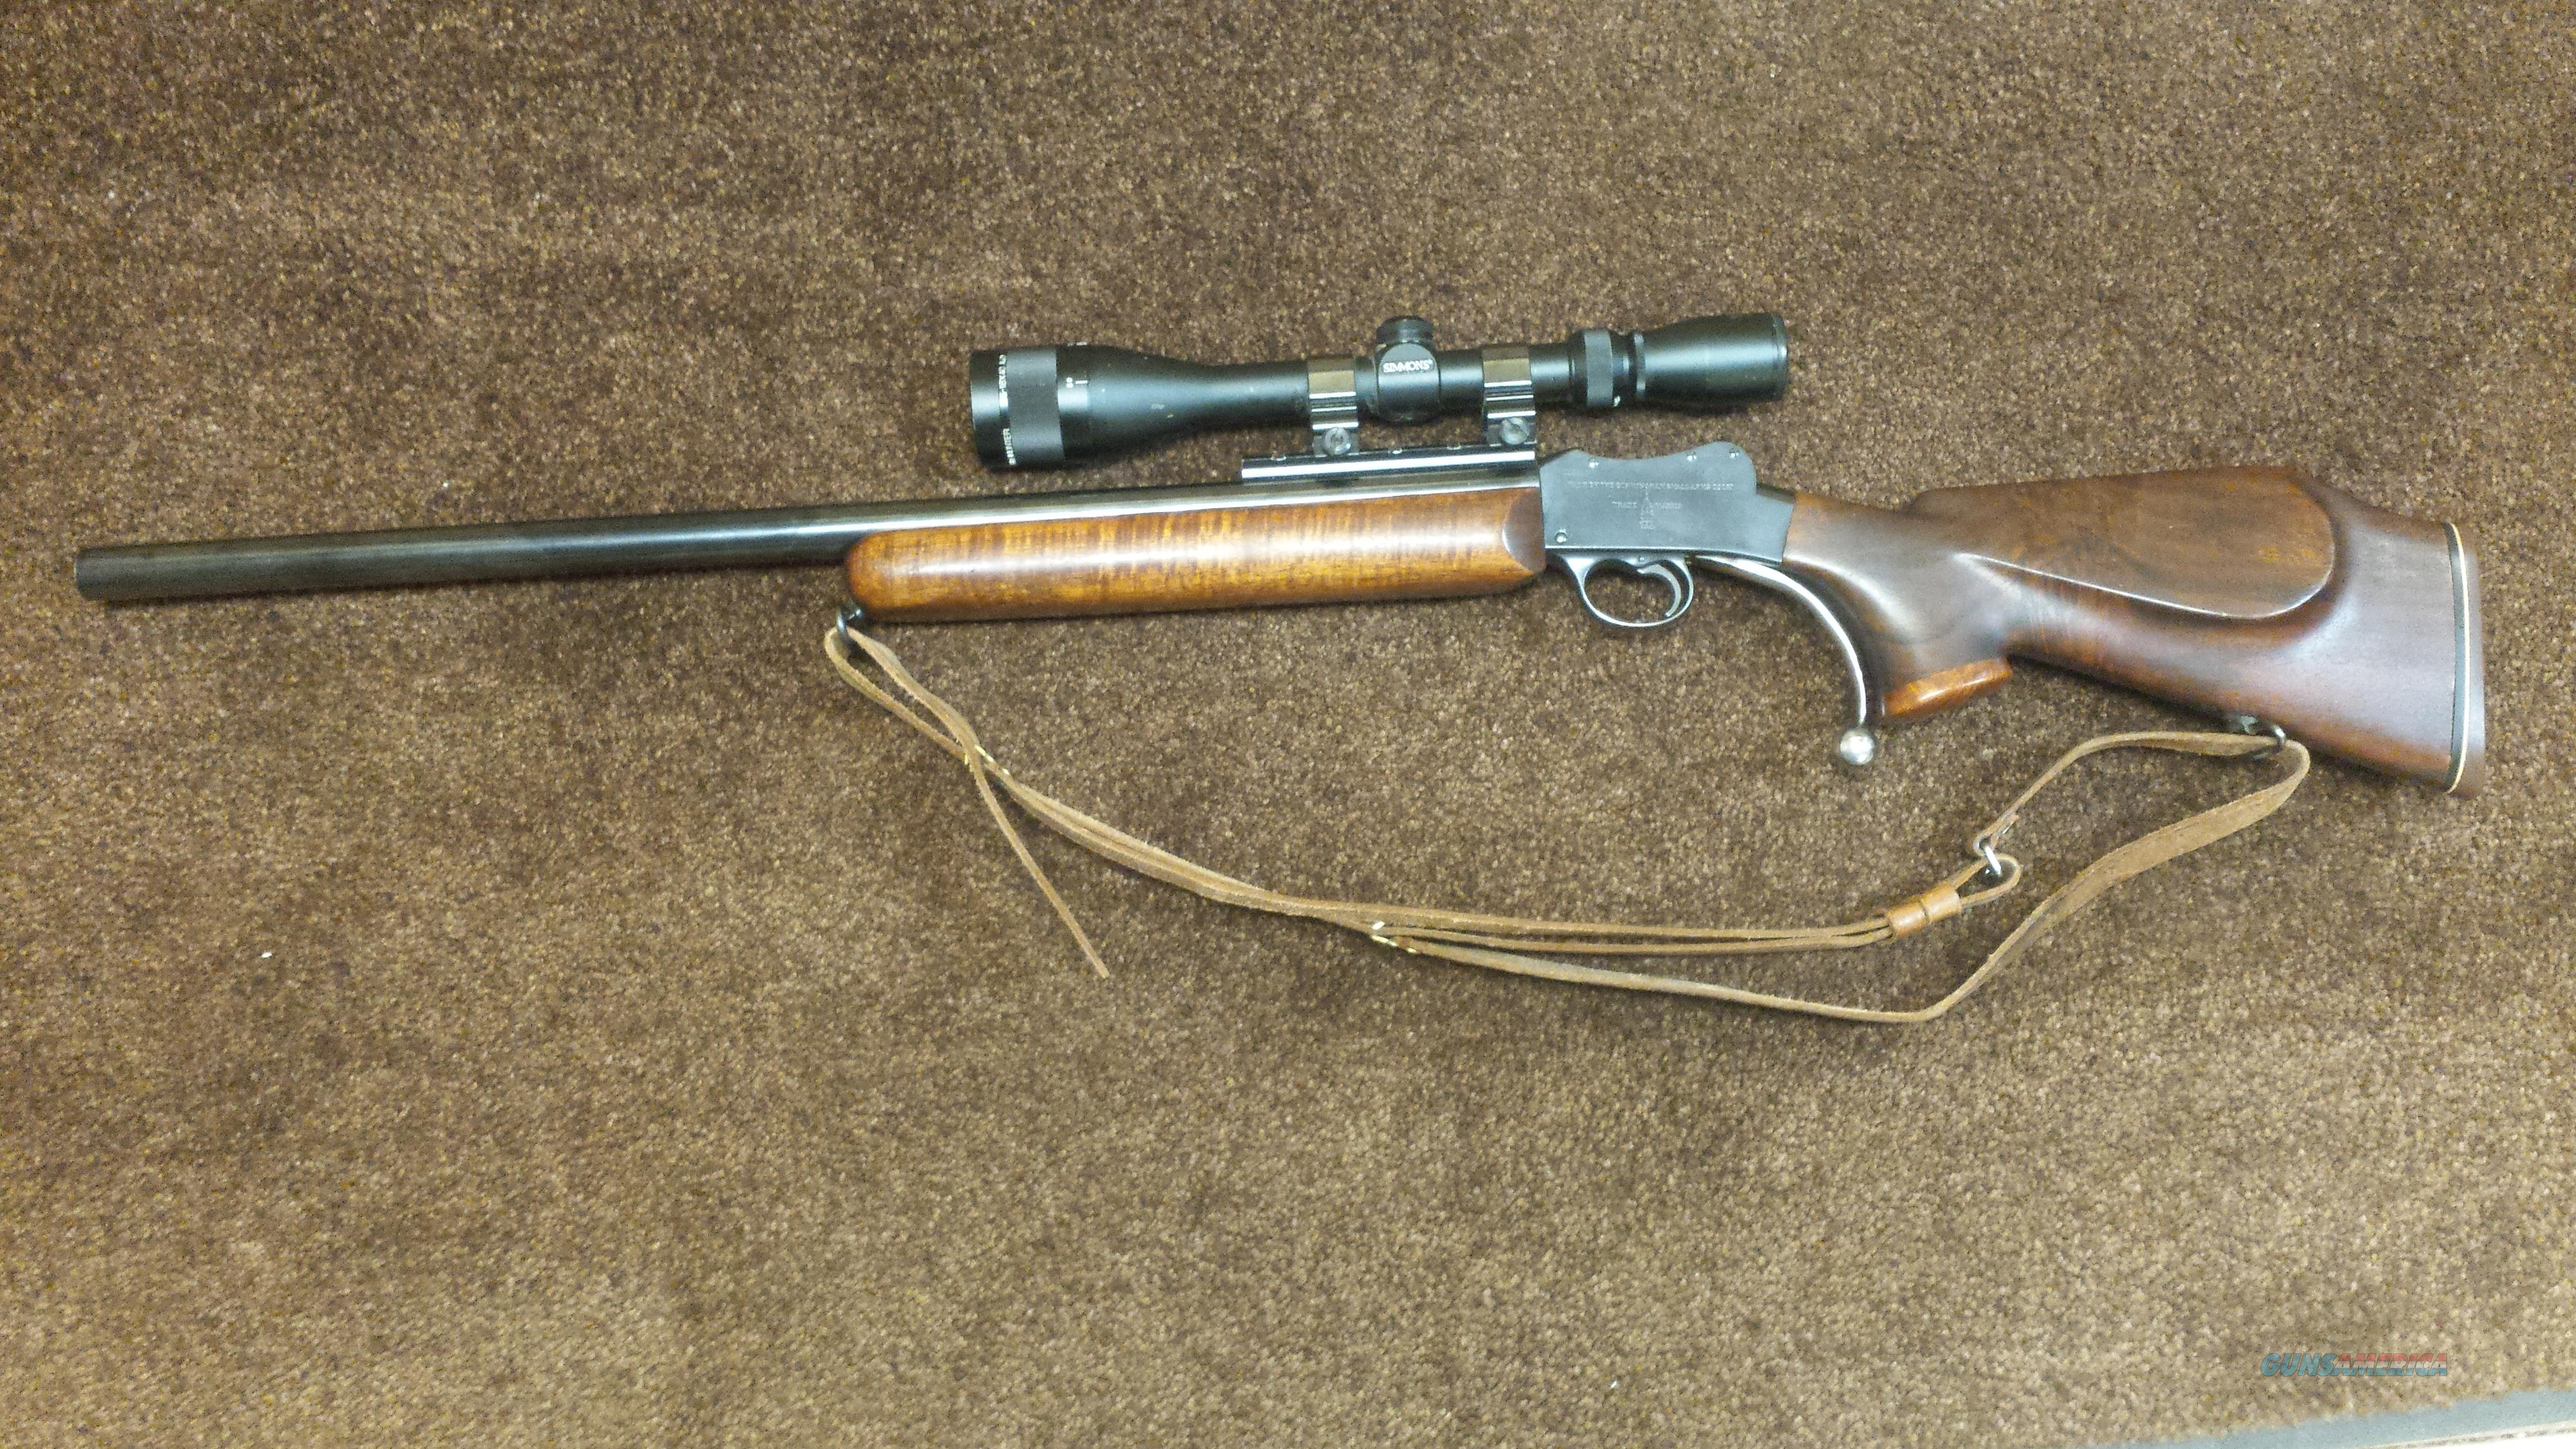 BSA .218 Bee w/ scope  Guns > Rifles > BSA Rifles